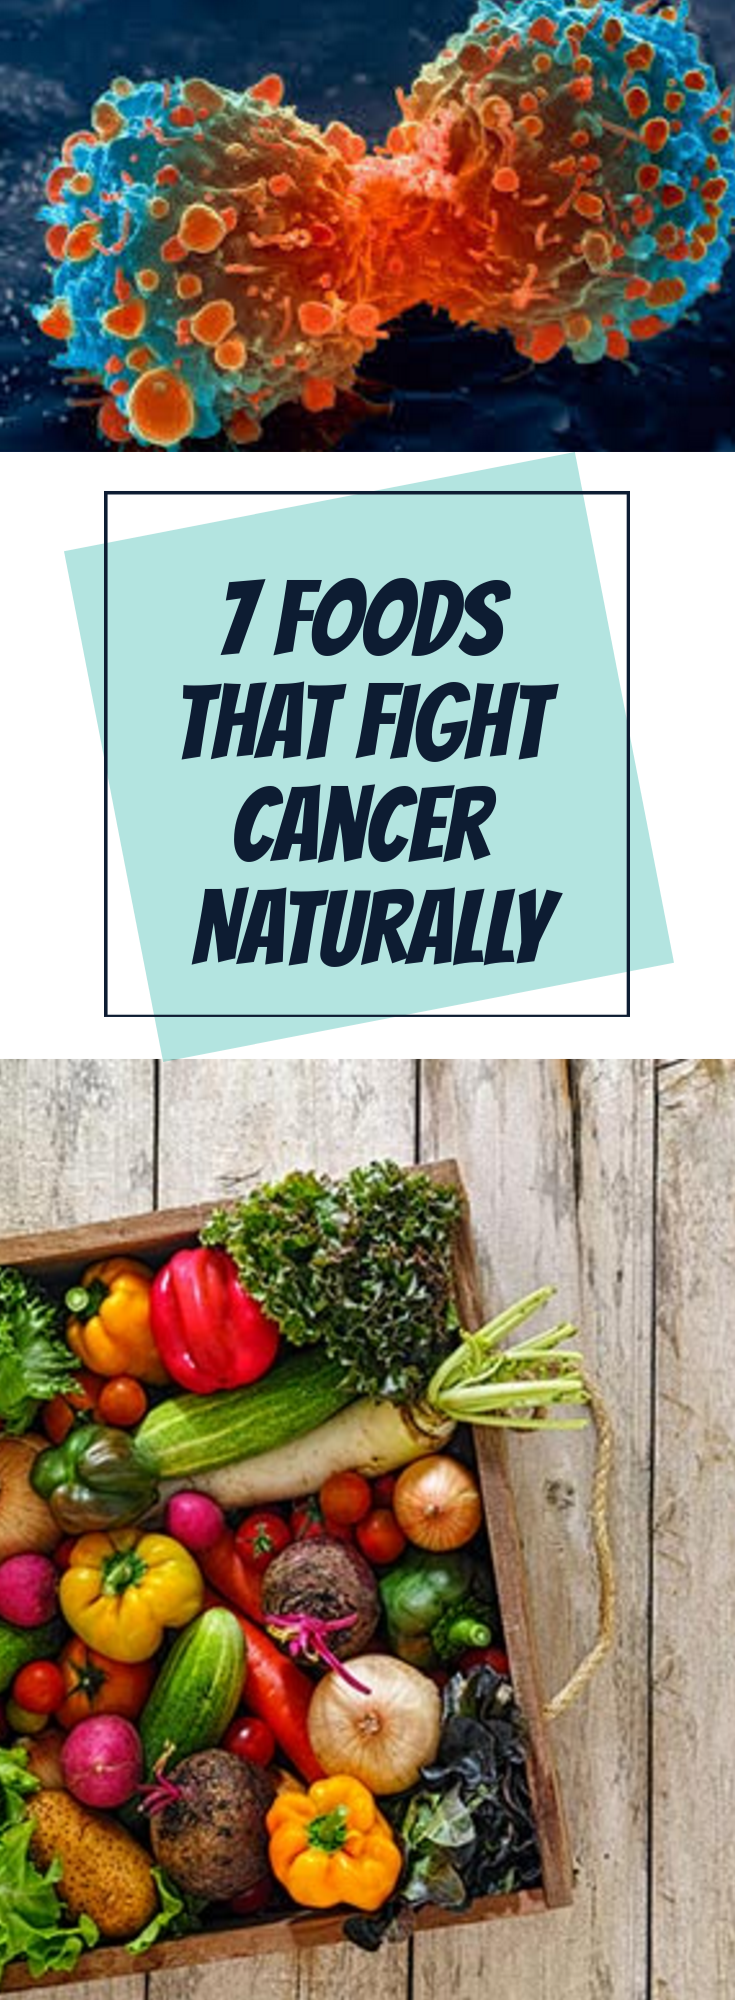 7 Foods that Fight Cancer Naturally | Health | Cancer